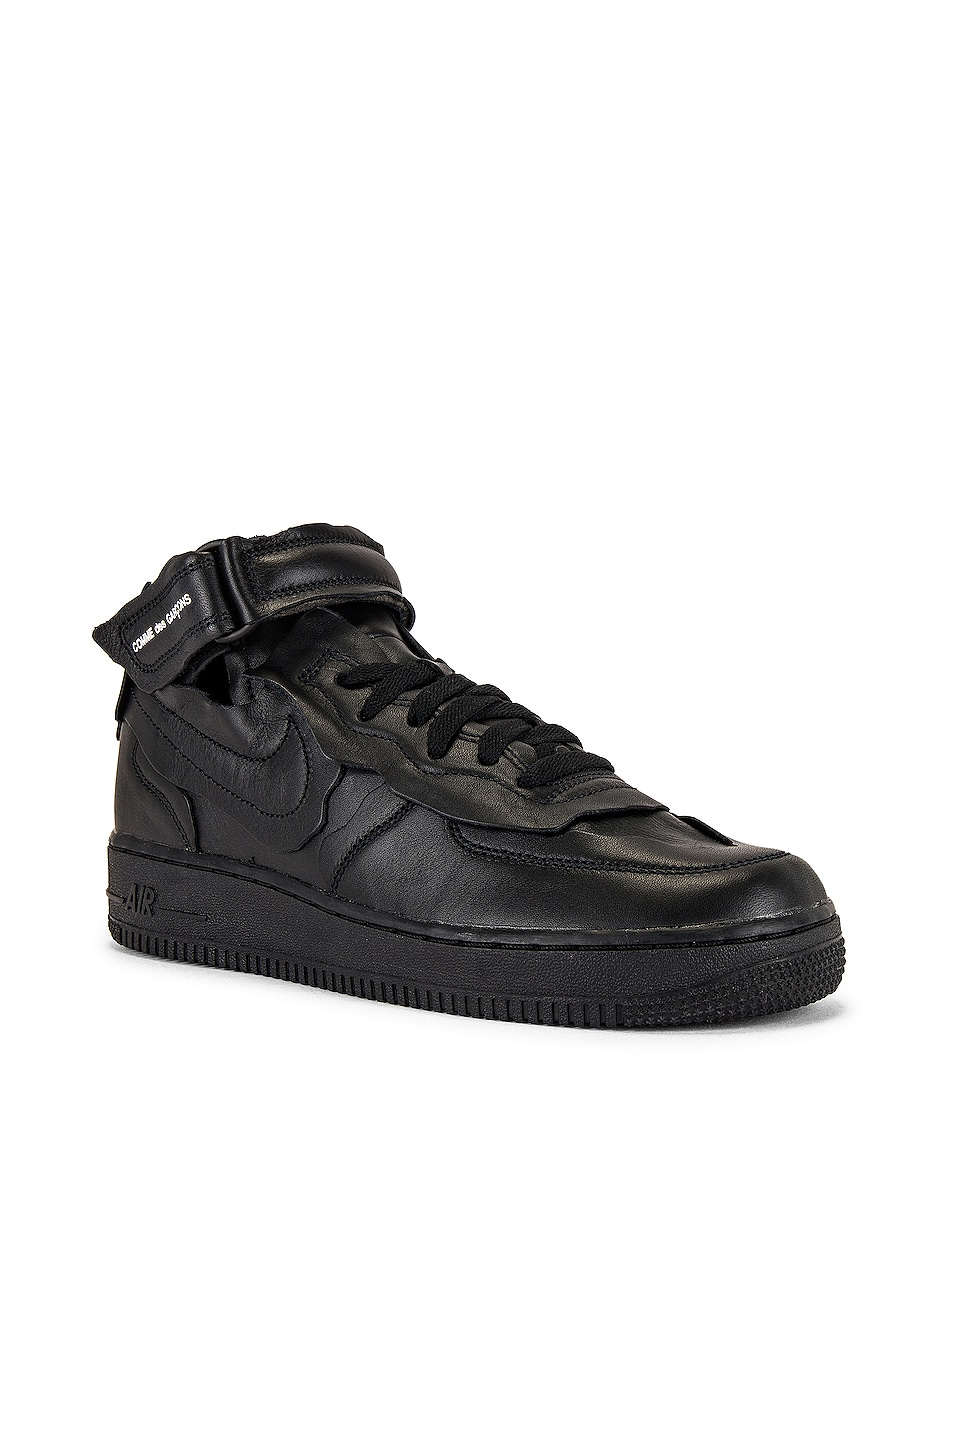 Image 1 of Comme Des Garcons Homme Plus Nike Cut Off Air Force 1 Sneaker in Black